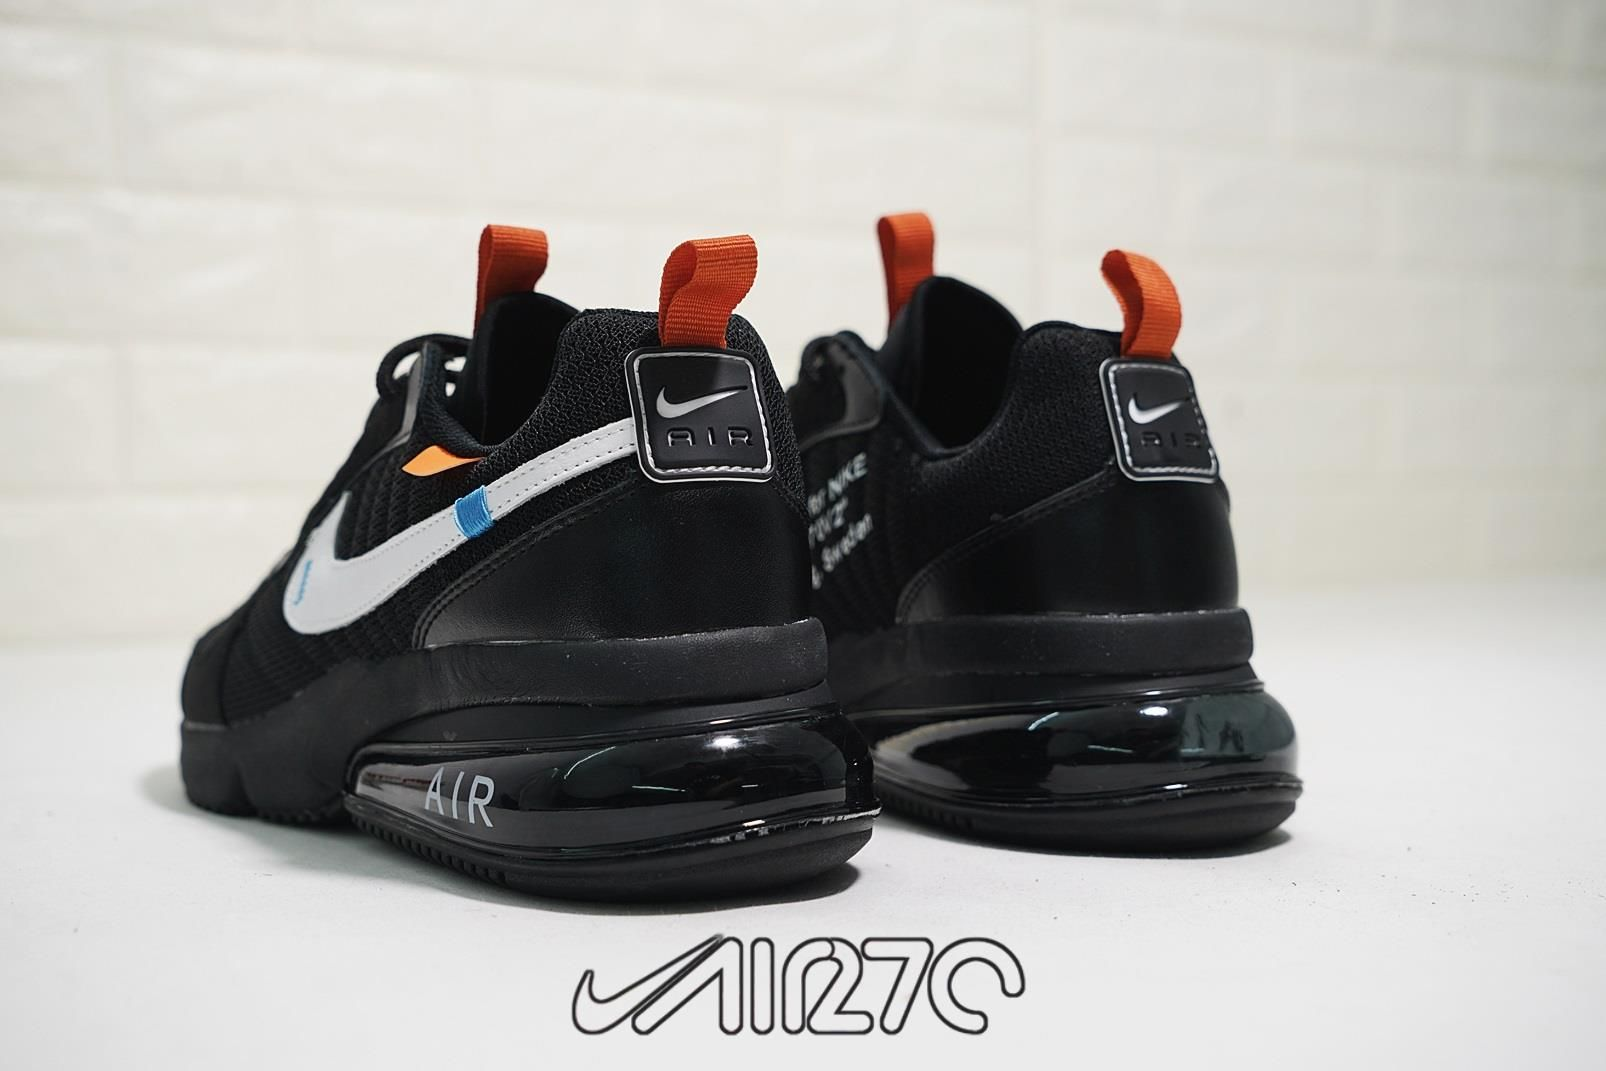 Off White x Nike Air Max 270 Futura Black White | Nike